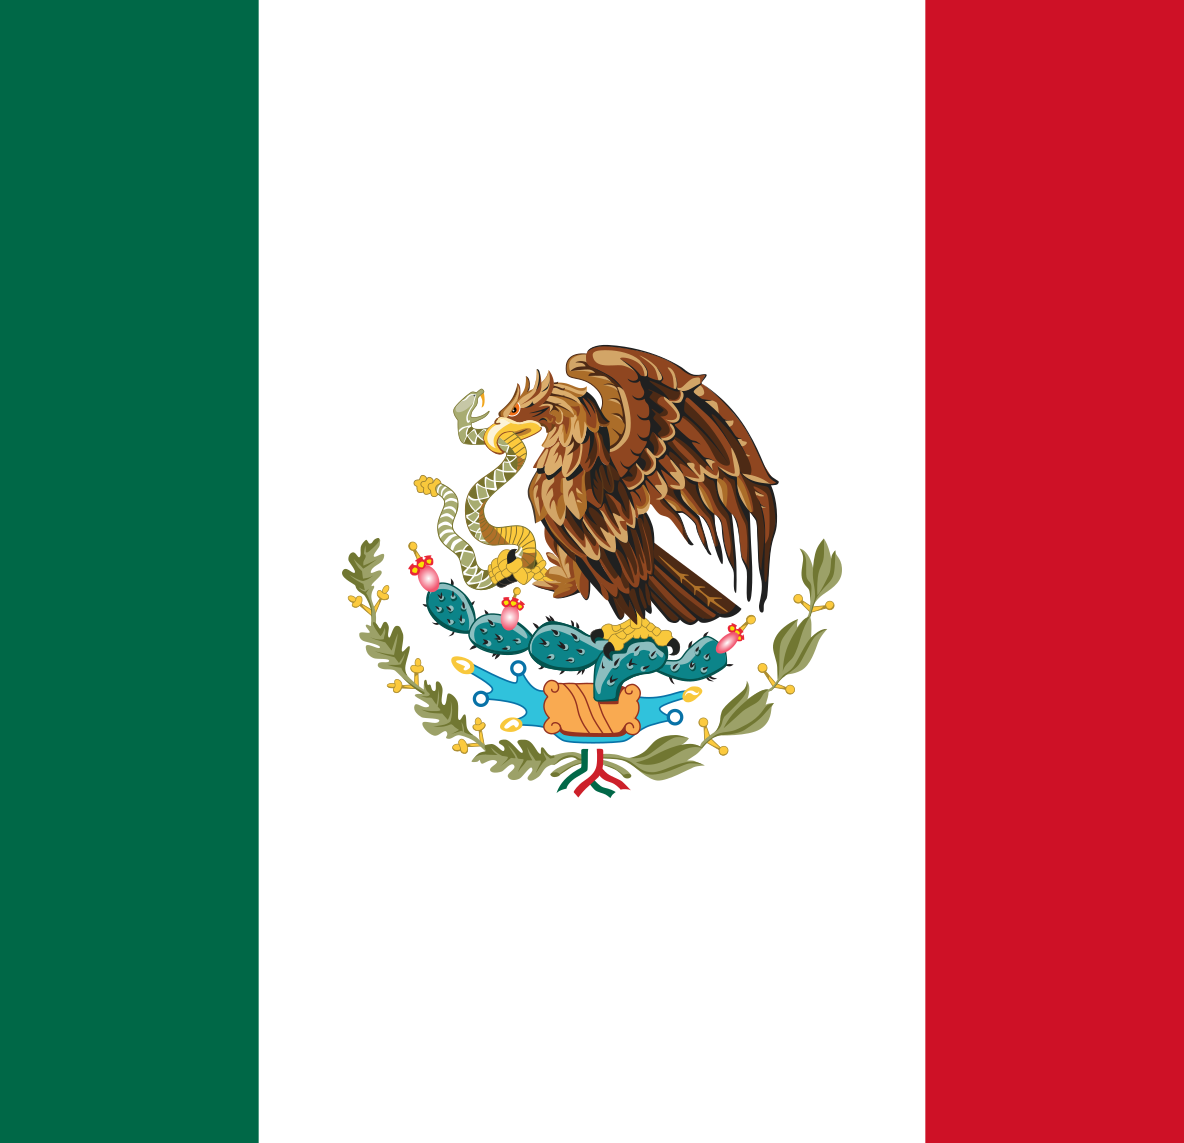 Mexico Market Review, December 2019: Low-risk foreign exchange strategies in demand